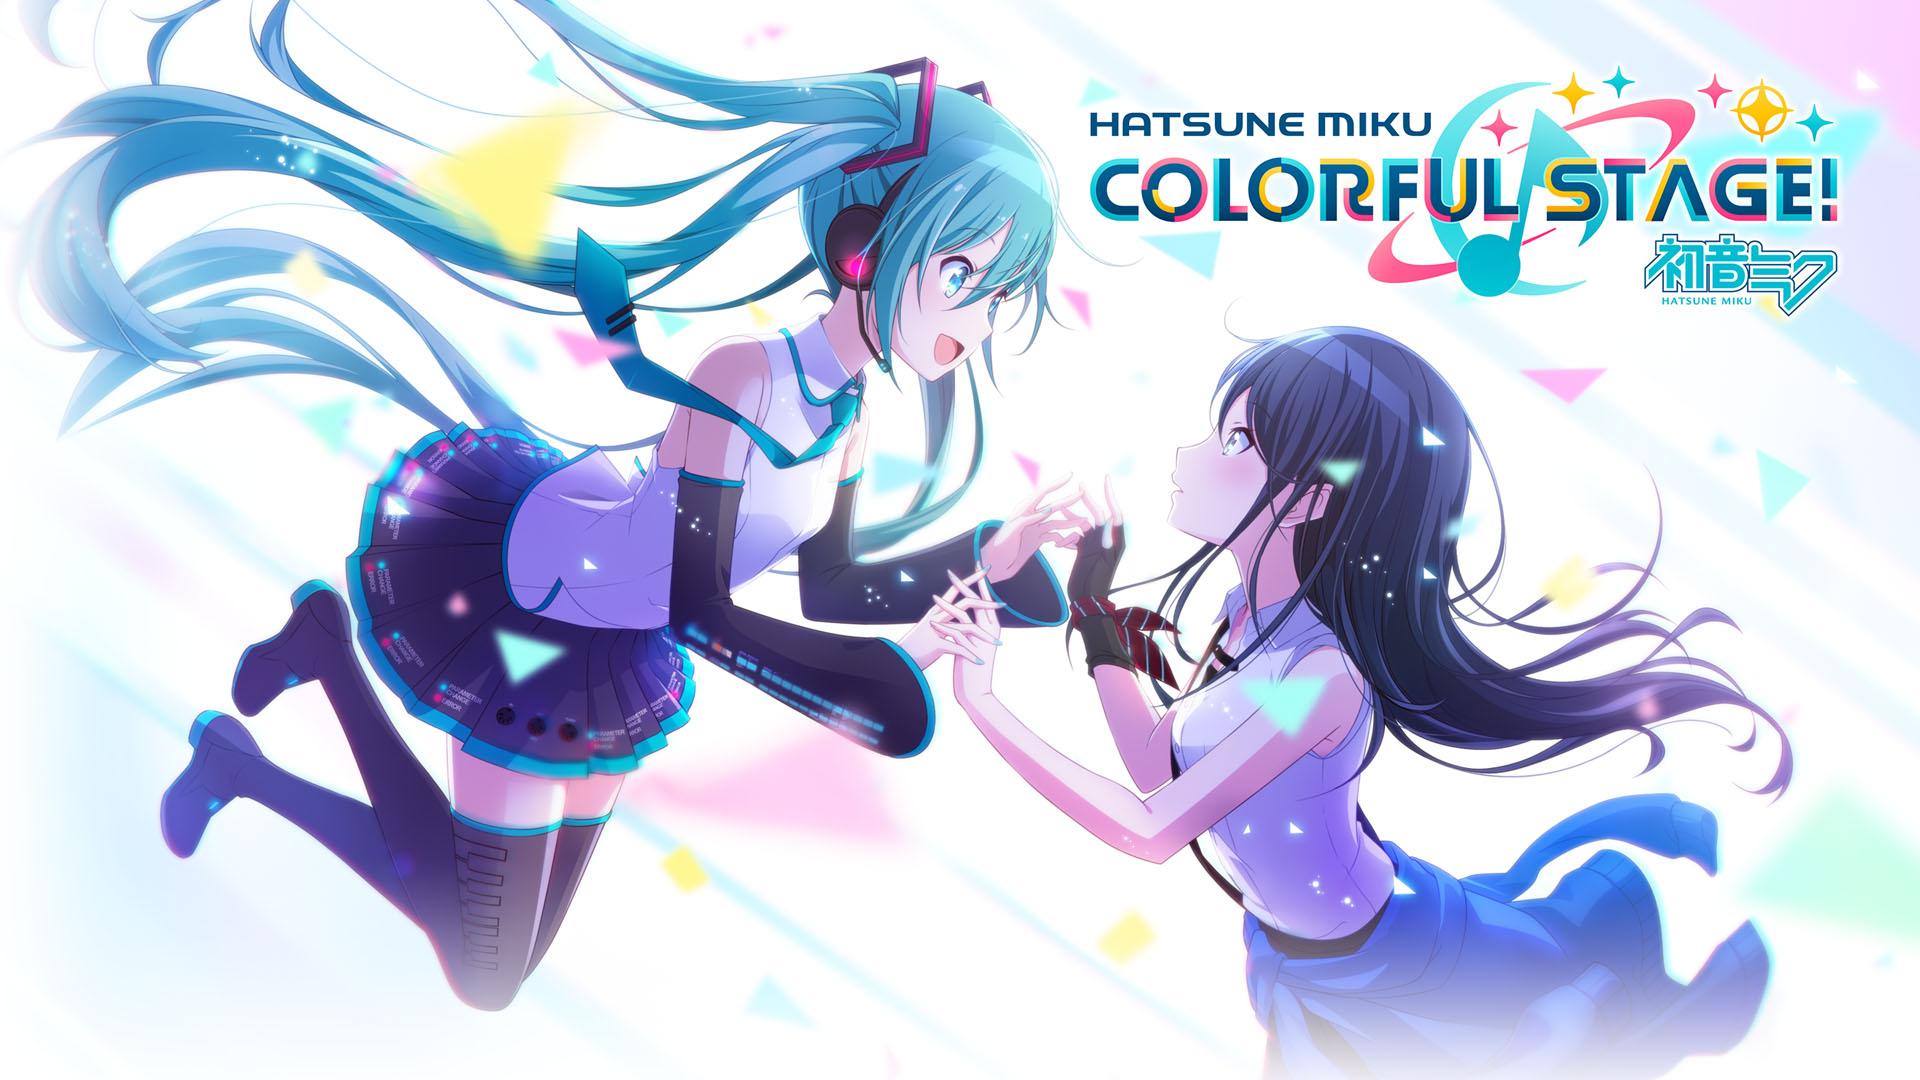 Hatsune Miku: COLORFUL STAGE!is coming west